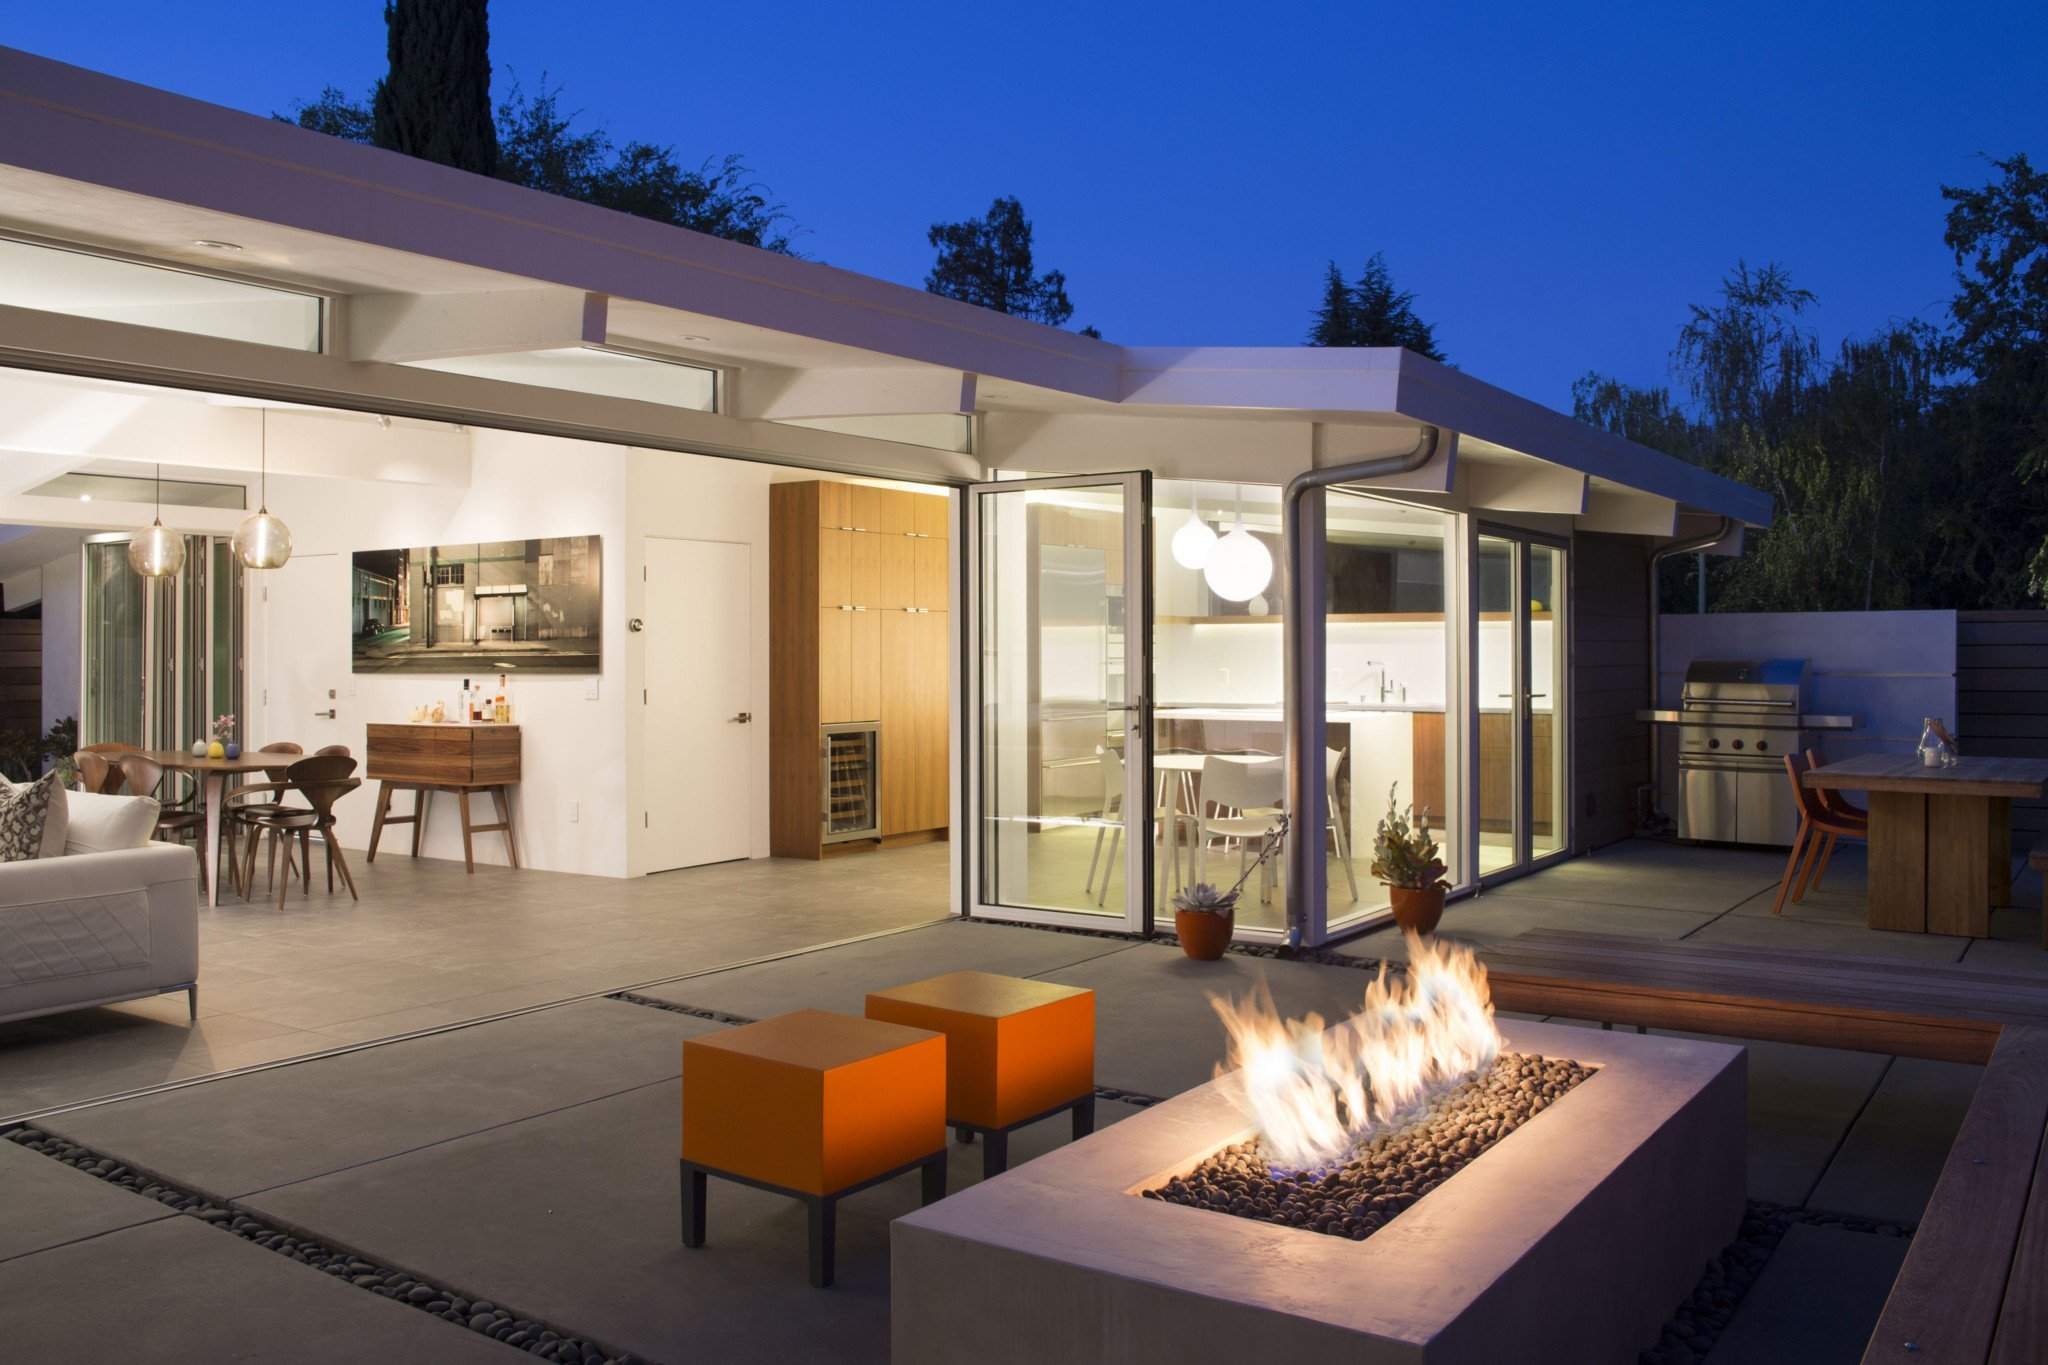 Klopf - Open Eichler House - Palo Alto, CA - back yard night